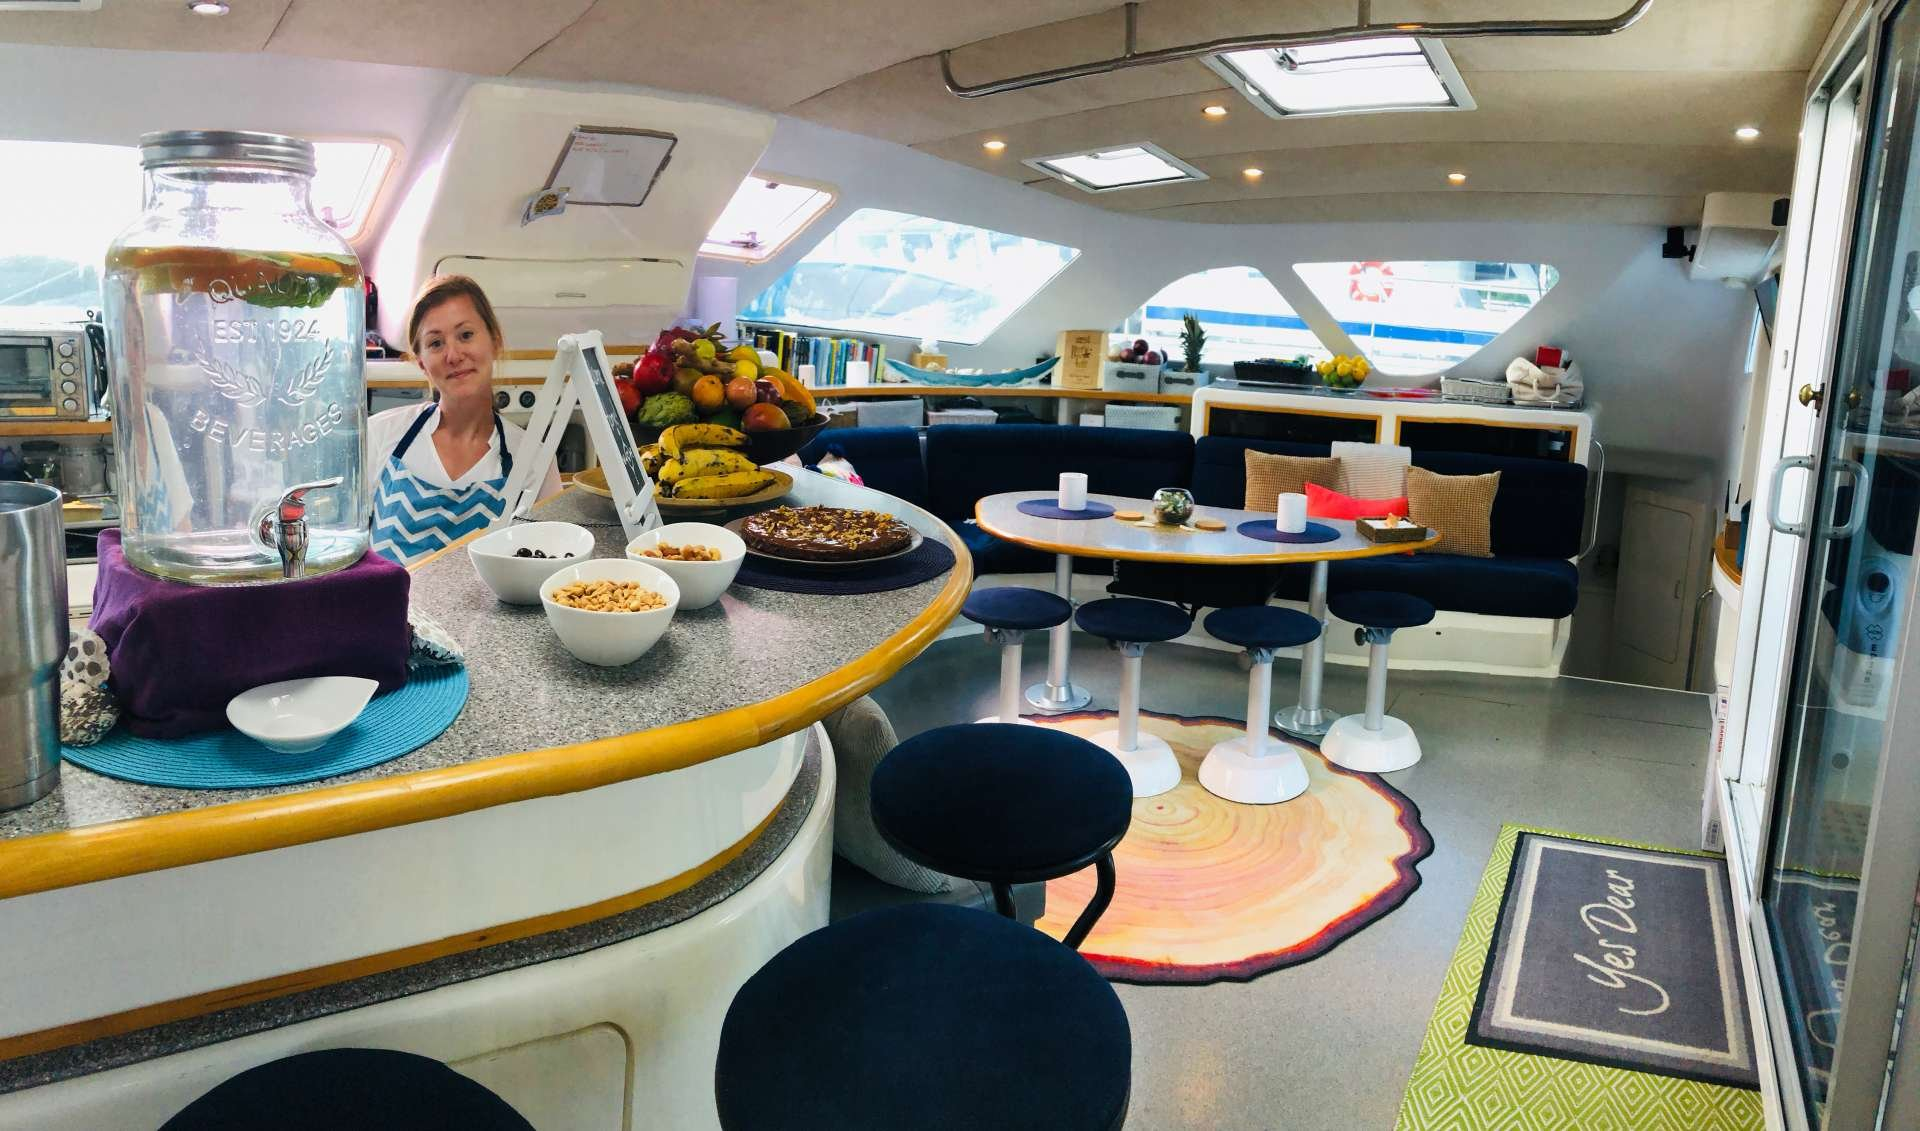 Catamaran Yacht 'YES DEAR' Spacious galley and salon, 10 PAX, 2 Crew, 58.00 Ft, 17.00 Meters, Built 2007, VOYAGE yacht, Refit Year 2012